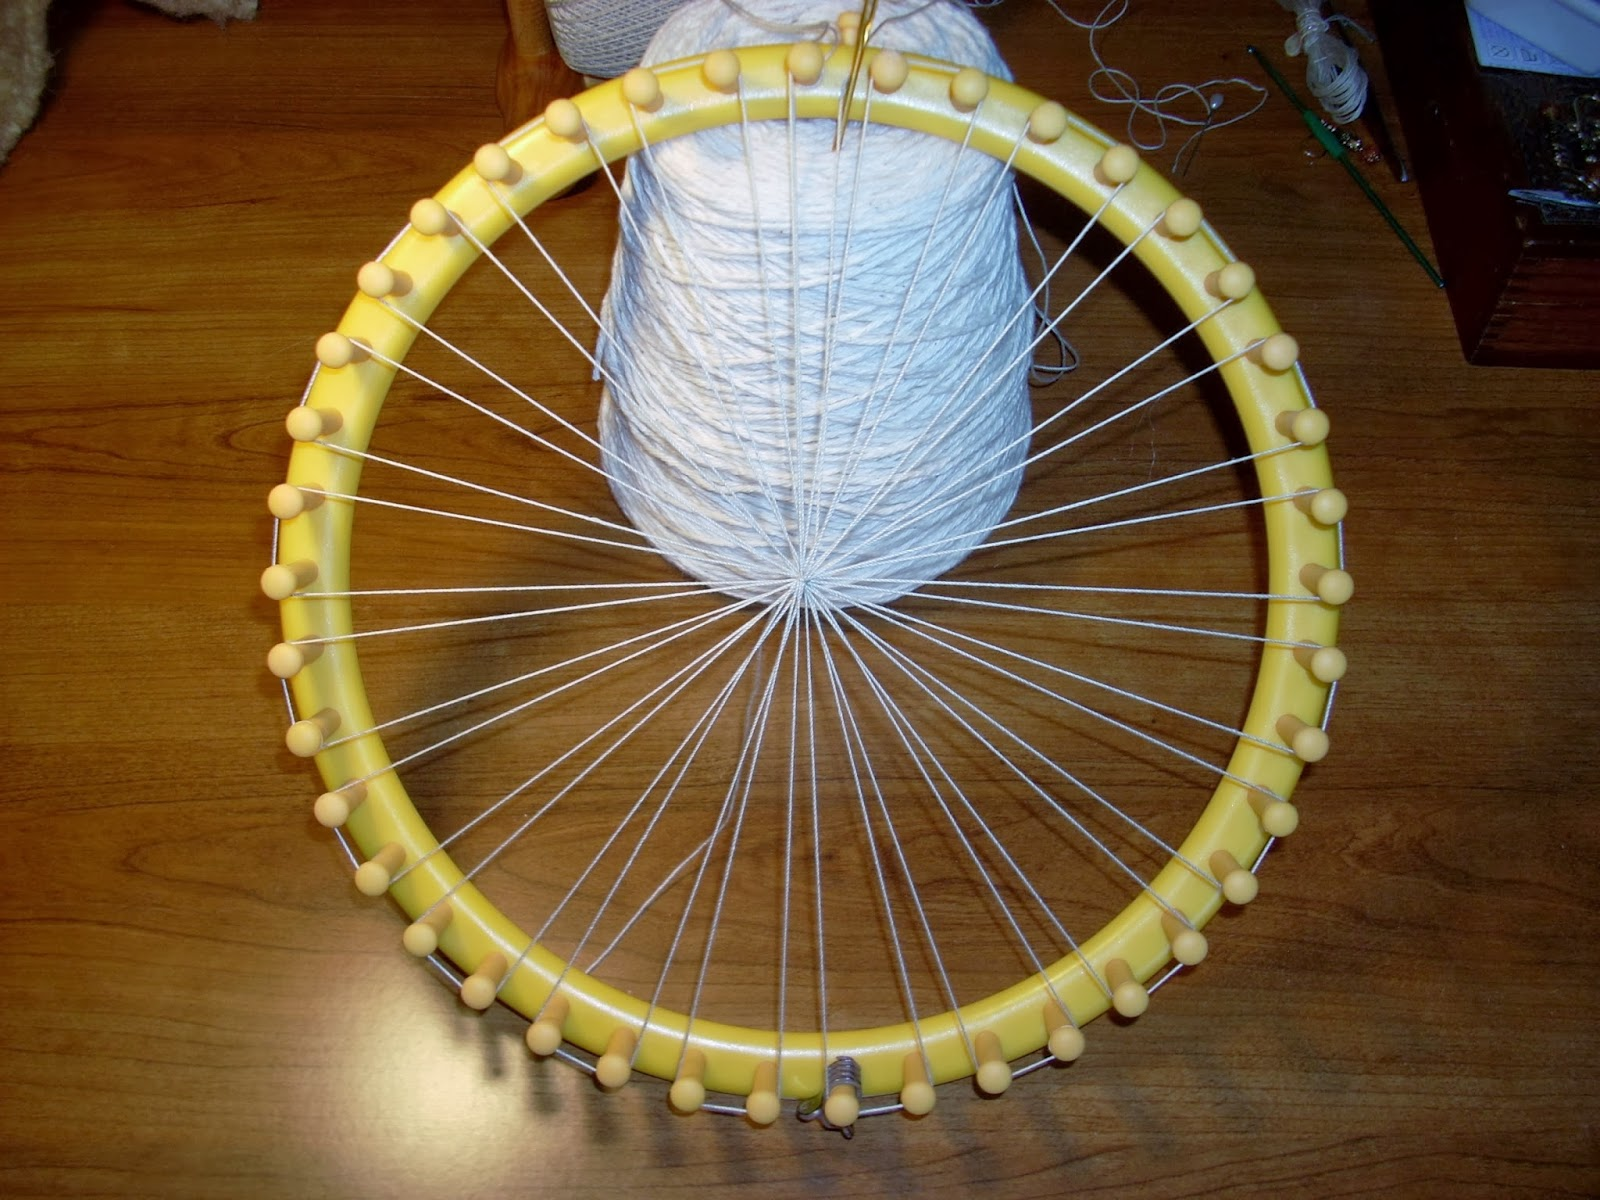 Heartsong Studio Warping A Knifty Knitter Loom For Weaving In The Round